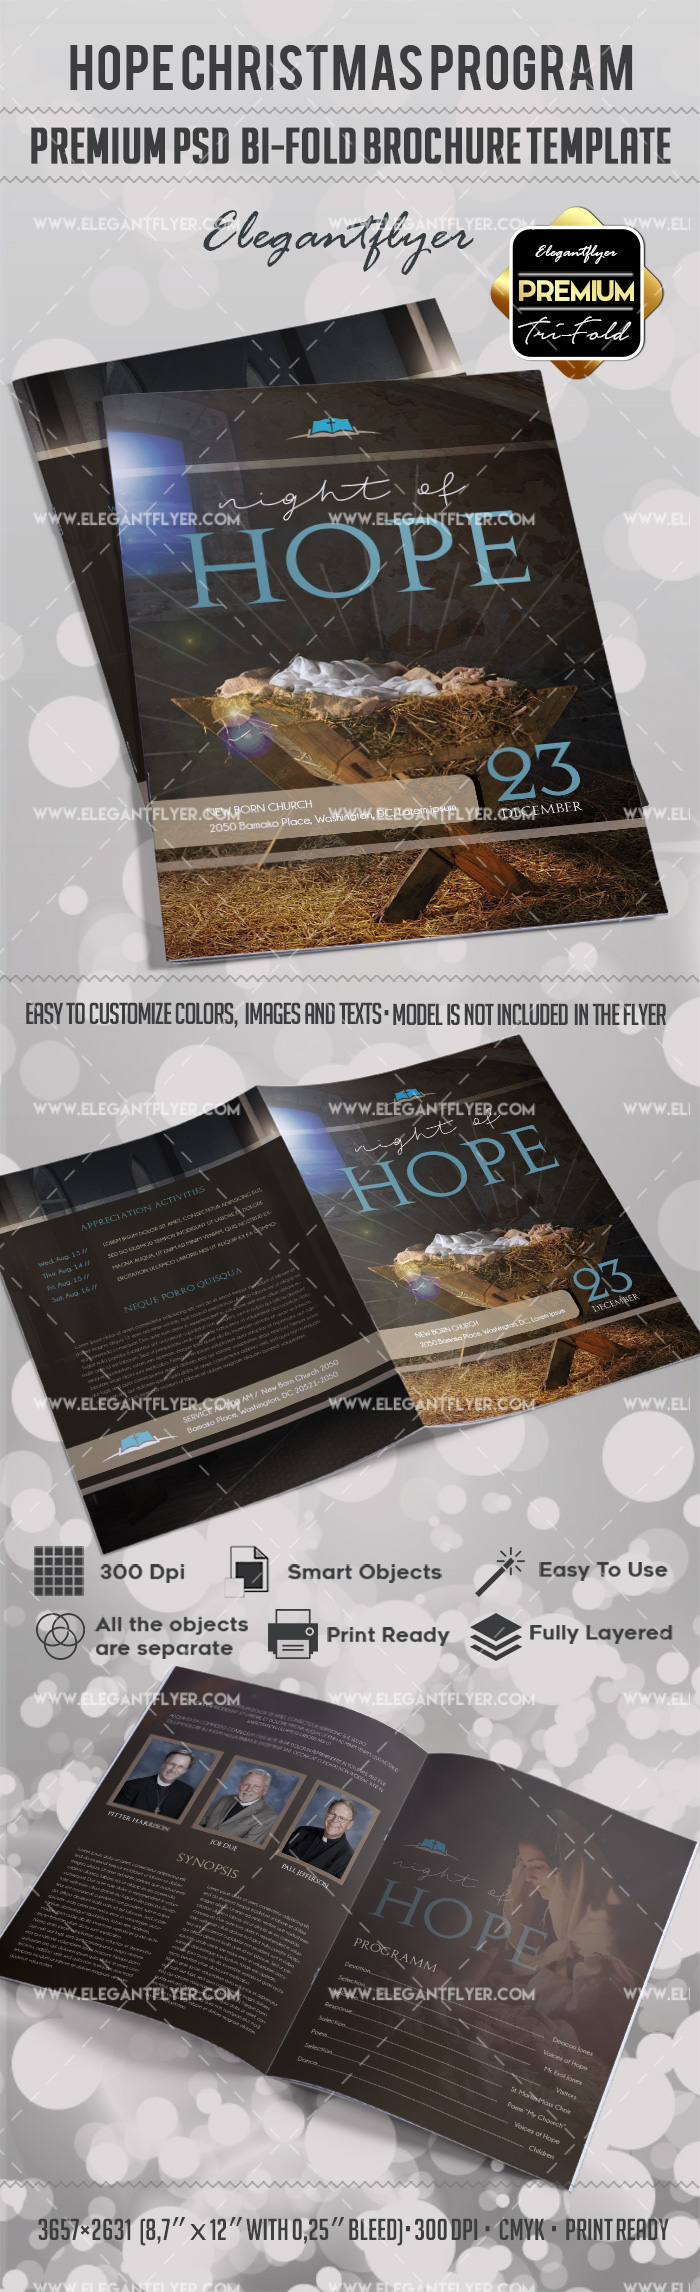 Hristmas hope program template by elegantflyer for Program brochure templates